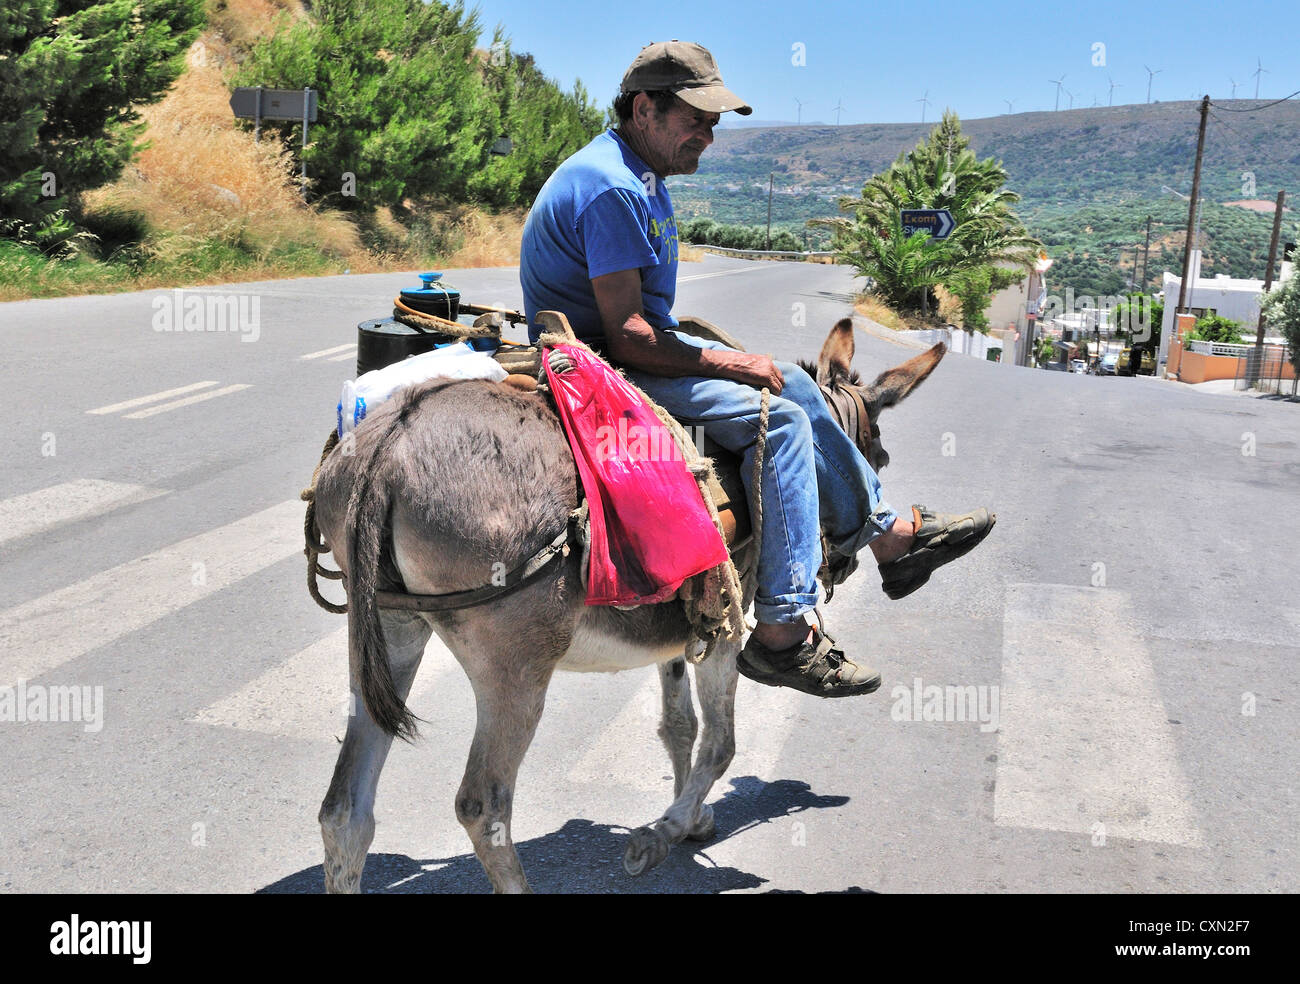 Man travelling on a donkey  as means of his transport on a  hlll top road near Sitia  Crete Greece - Stock Image